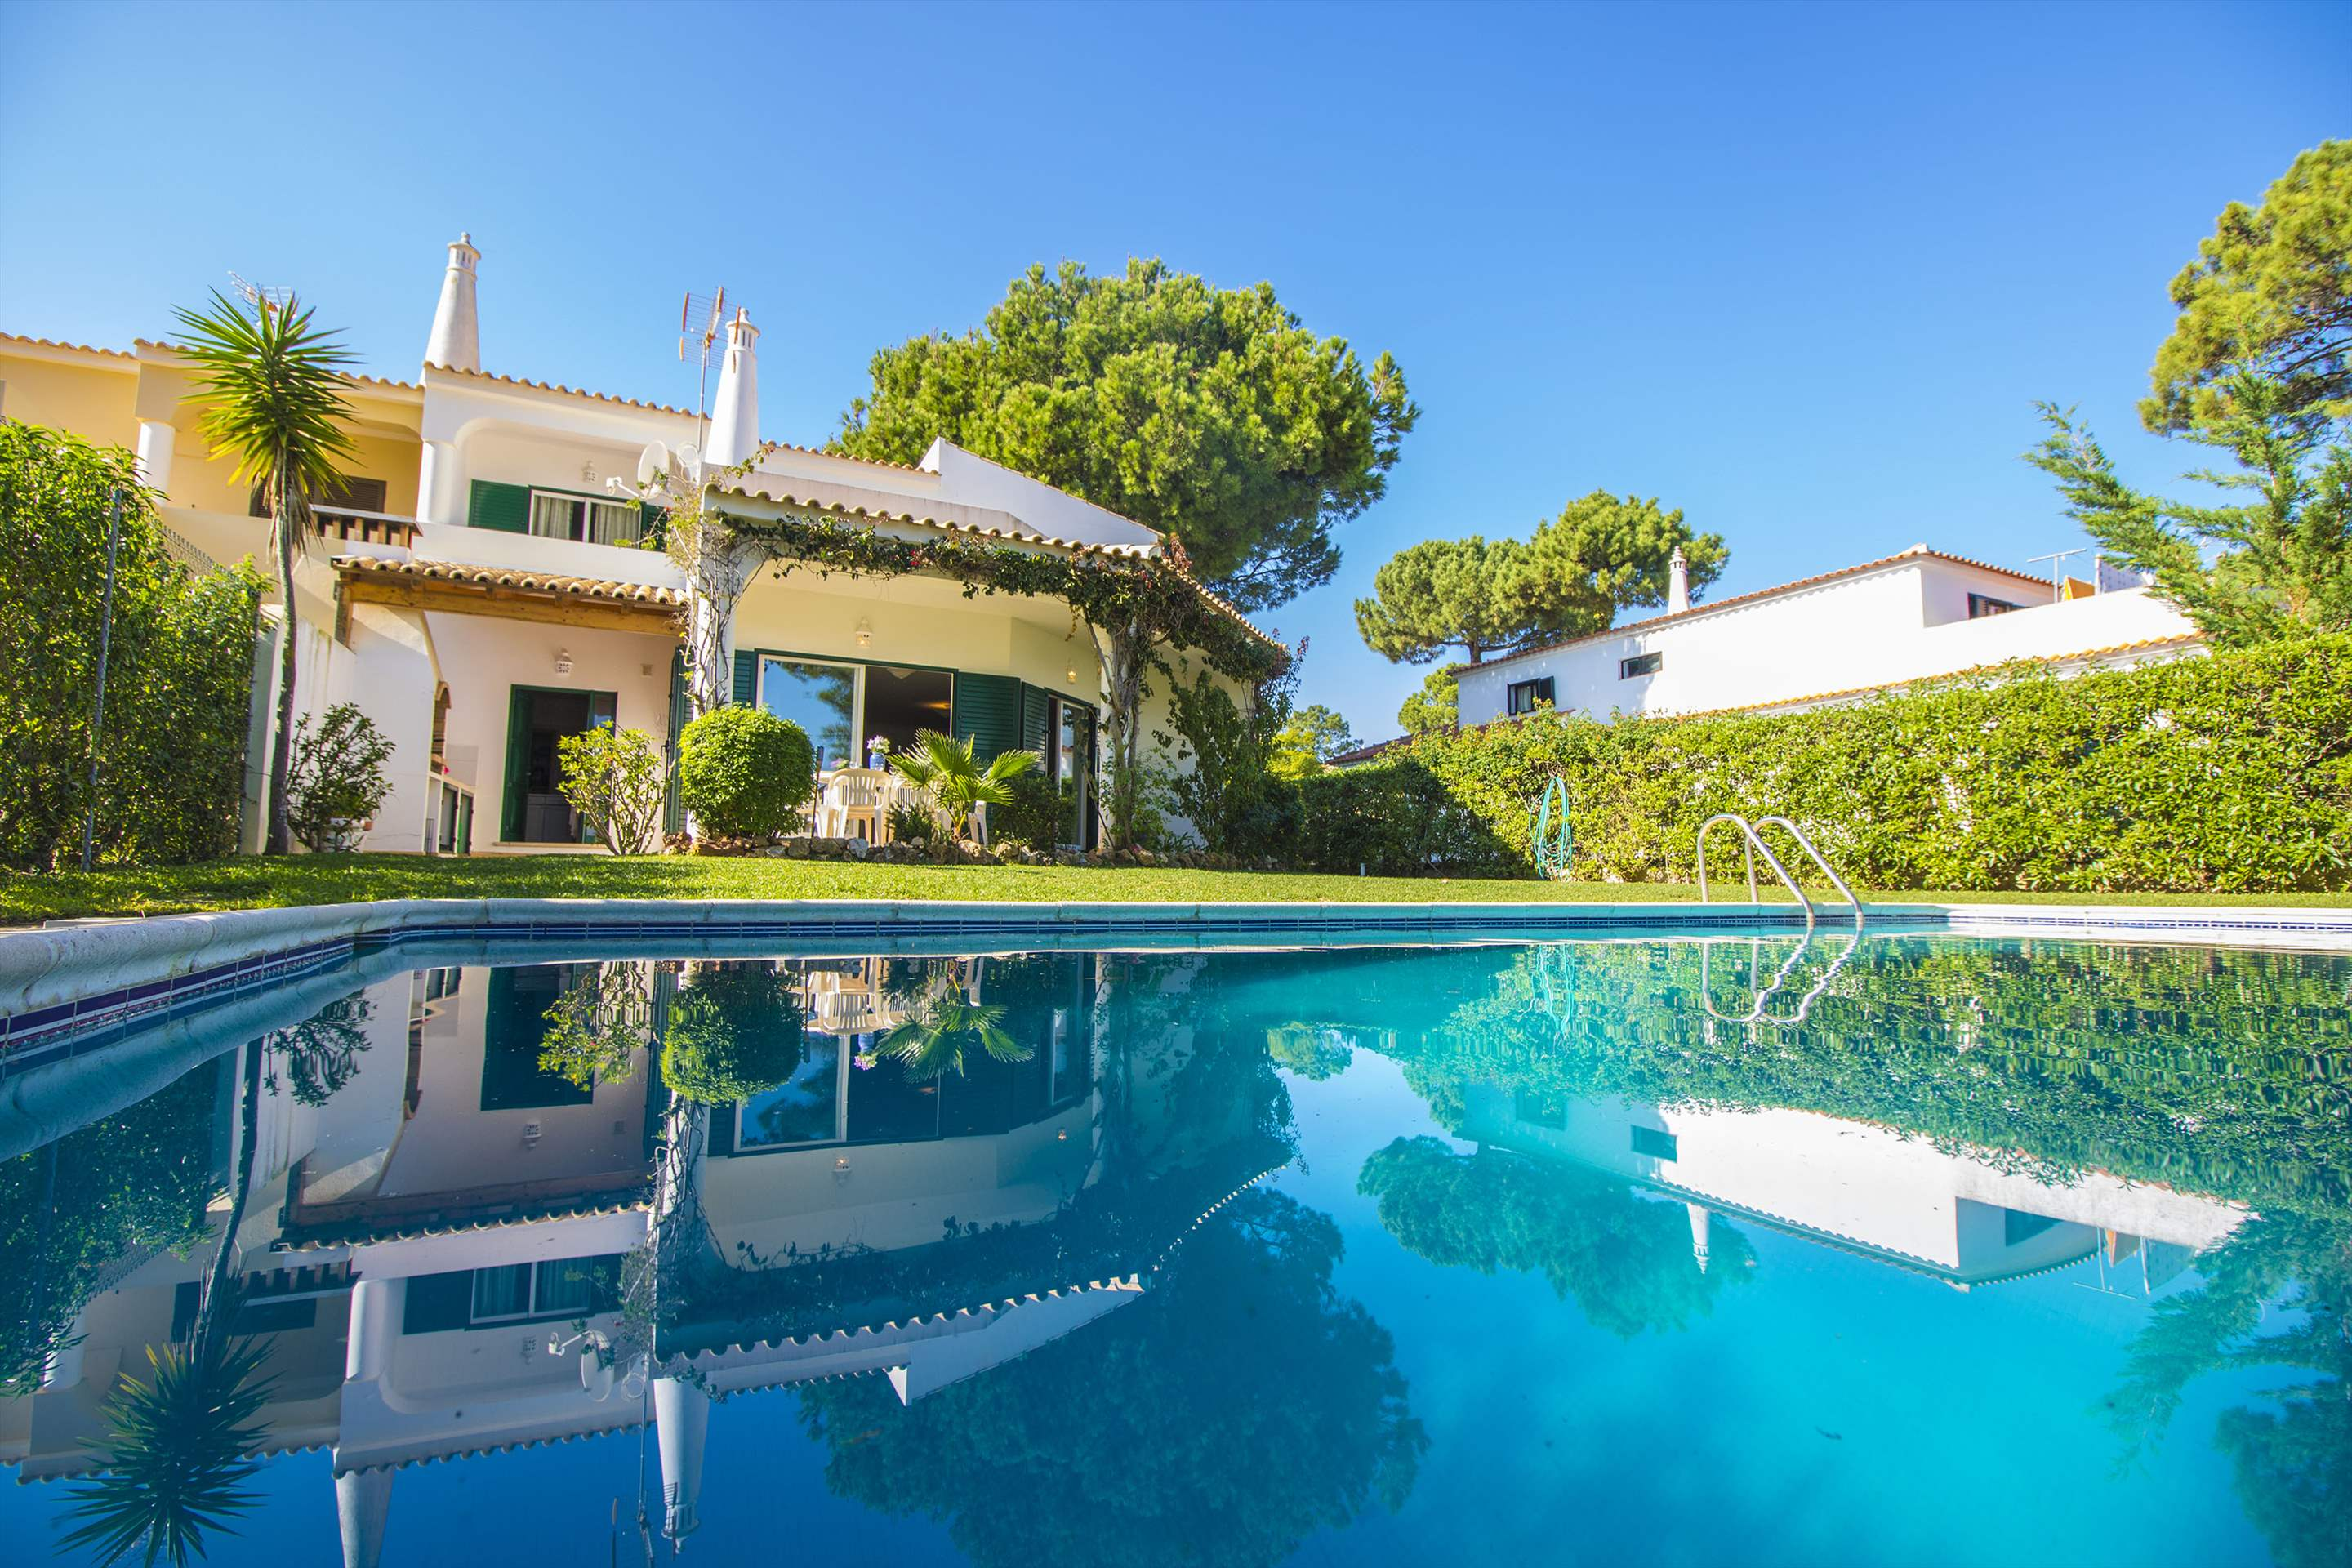 Villa Clara, 4 bedroom villa in Vilamoura Area, Algarve Photo #1